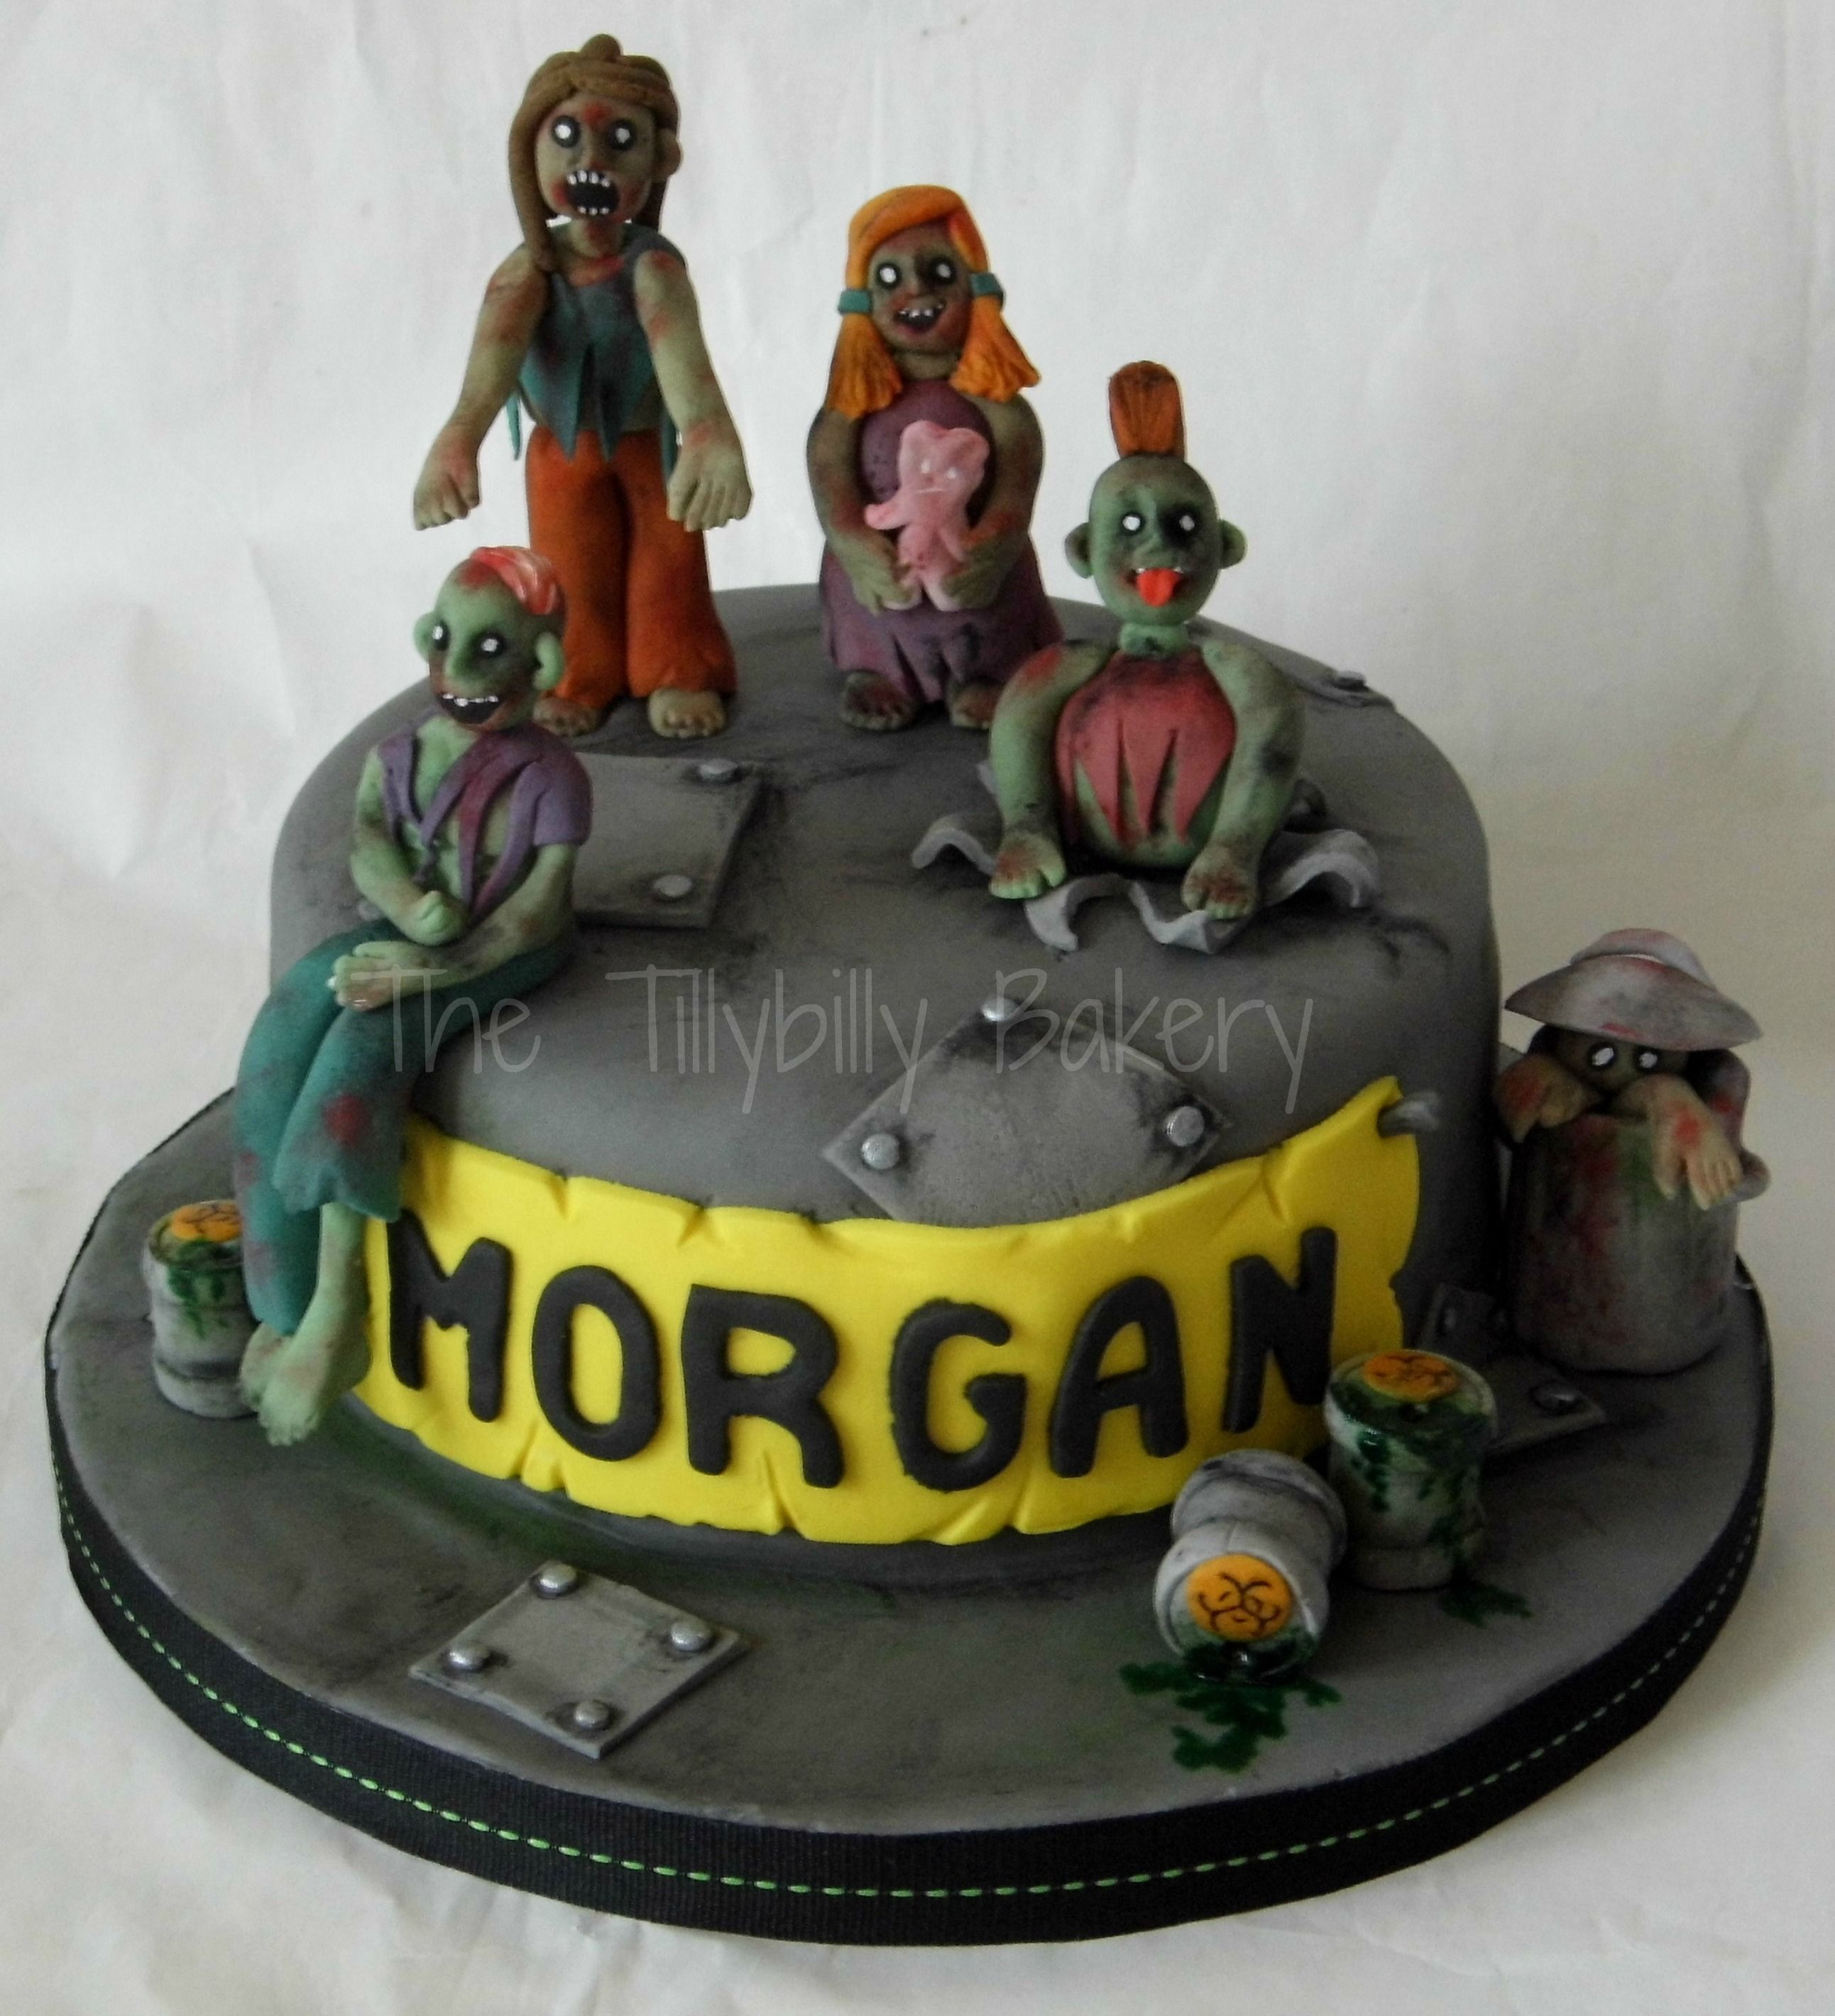 Zombie cake for a horror mad teen Fondant figures and metal plate